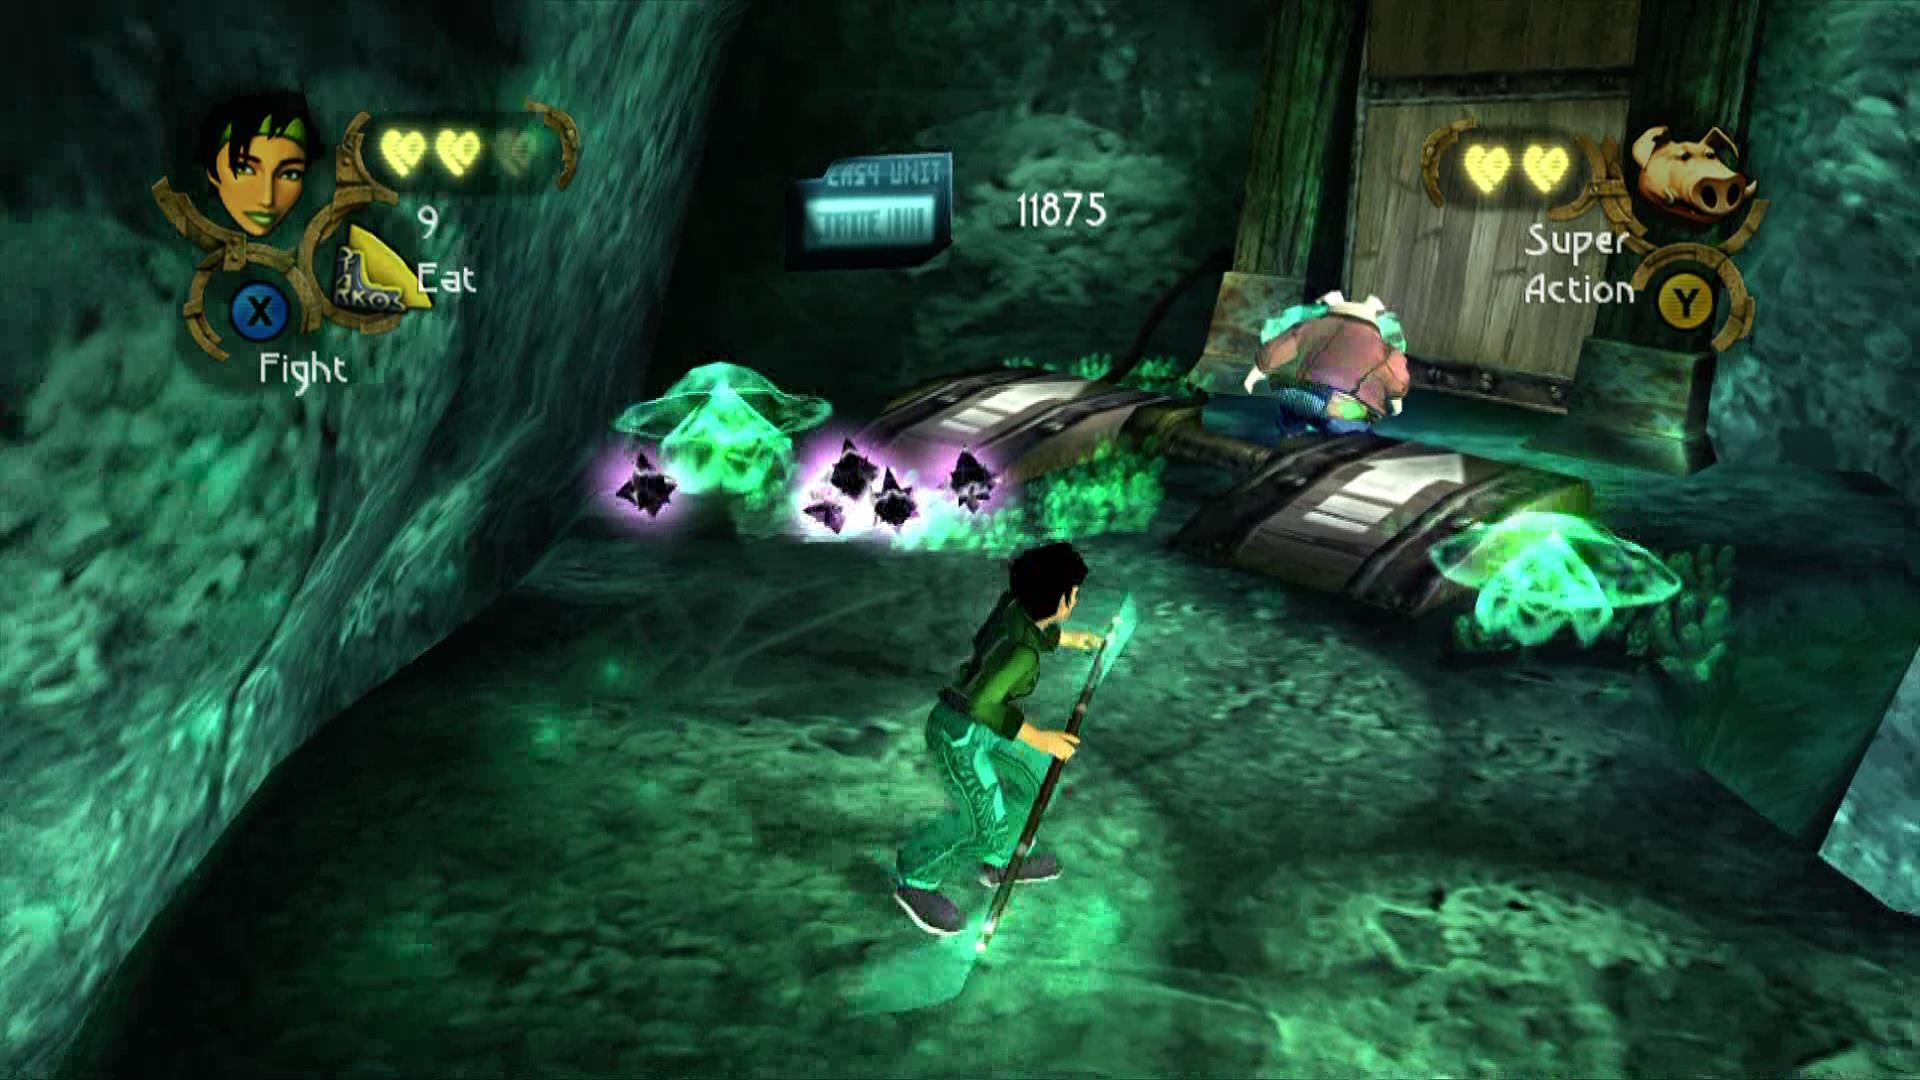 Beyond Good & Evil Xbox 360 Enemies leave crystals behind which convert to money